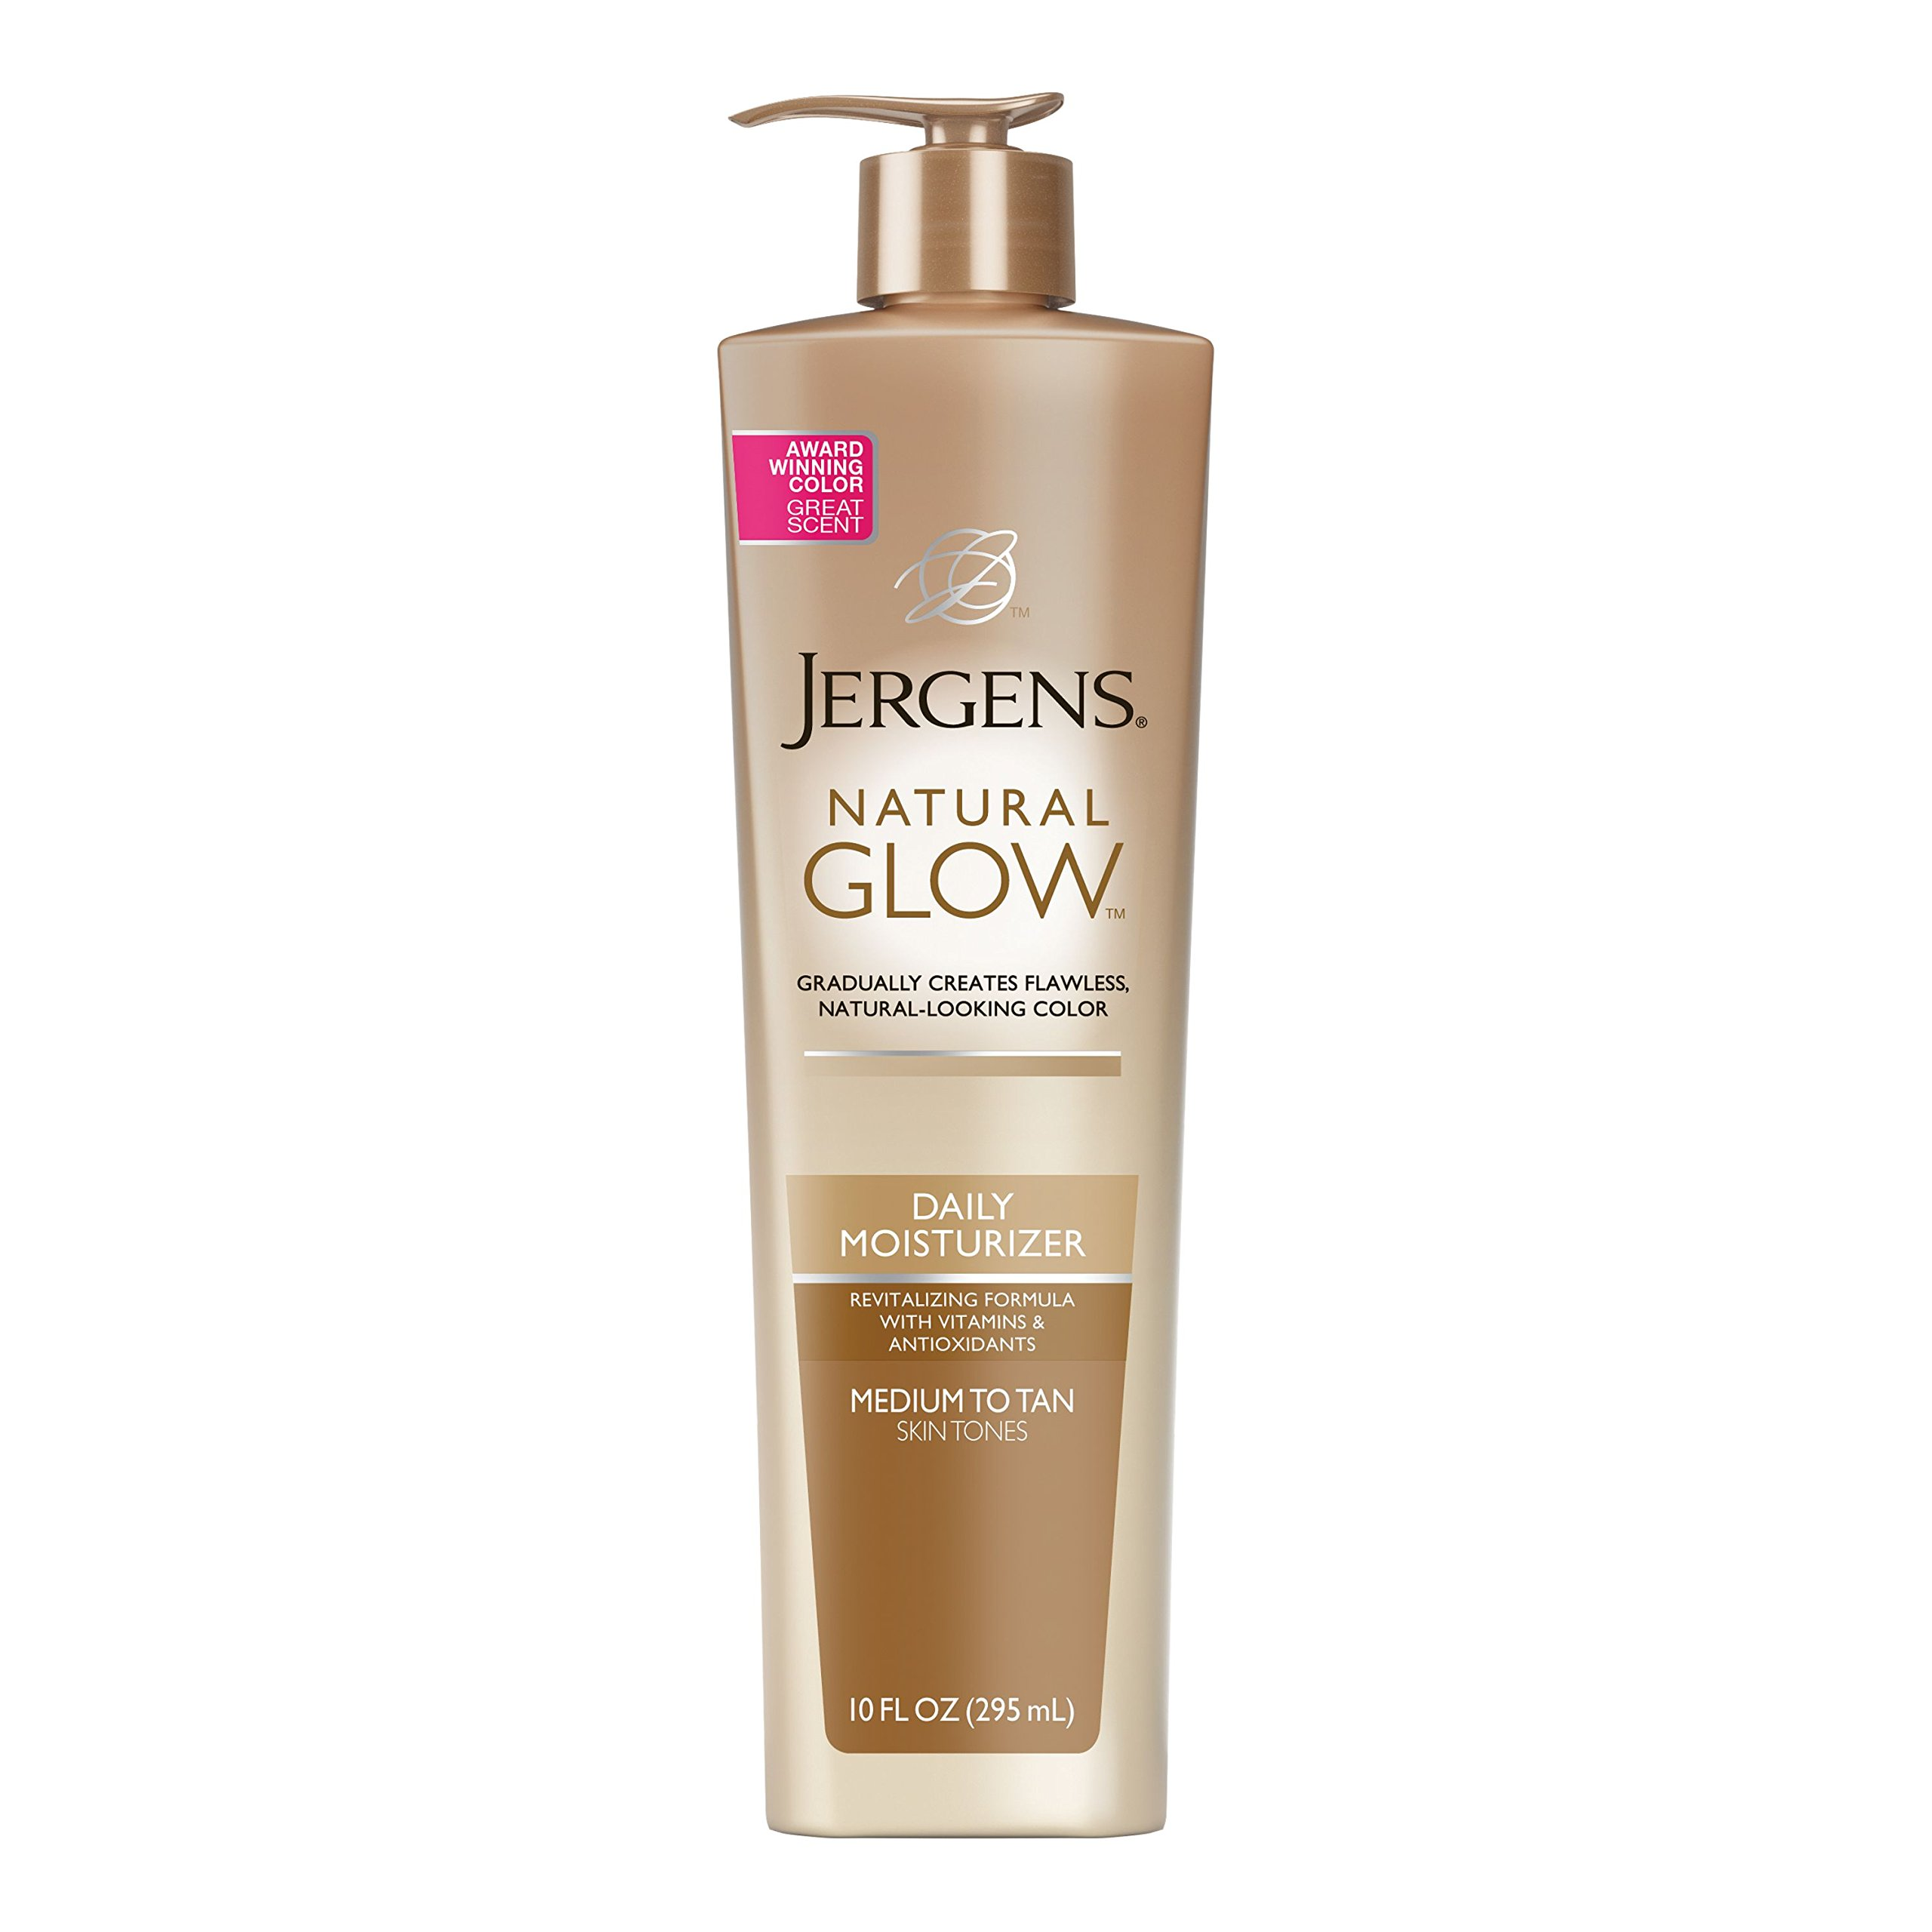 Jergens Natural Glow Daily Moisturizer for Body, Medium to Tan Skin Tones, 10 Ounce Pump by Jergens